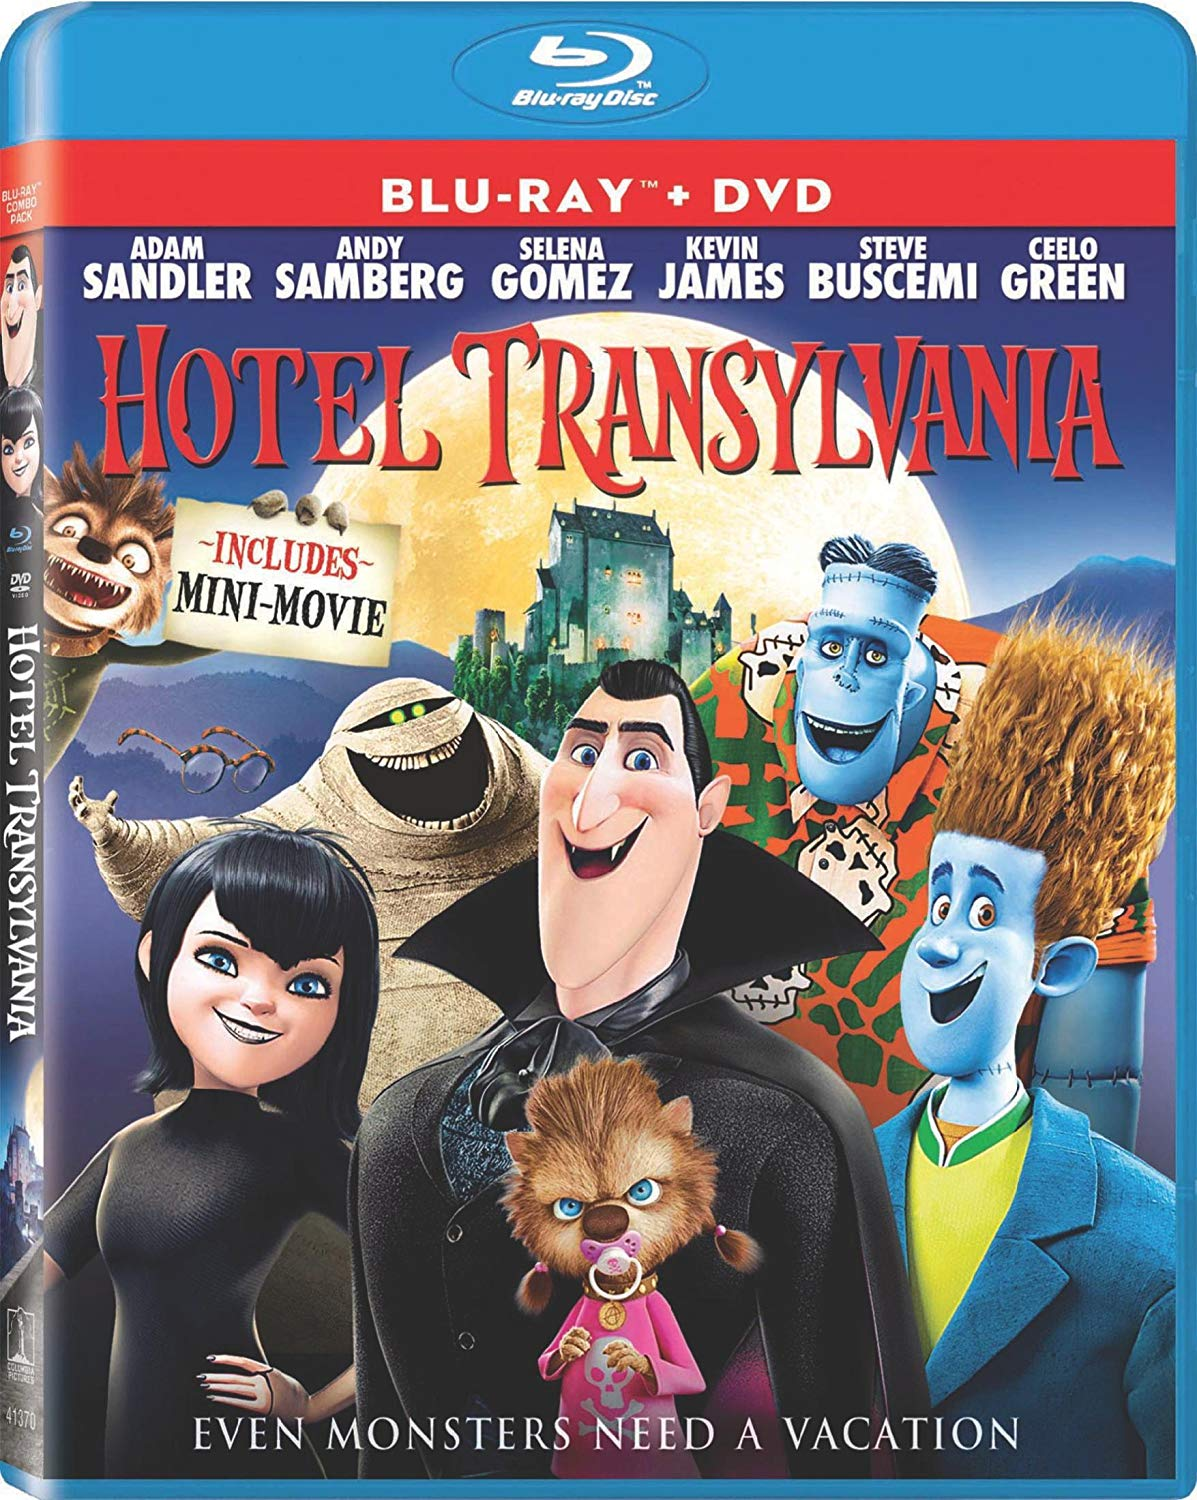 Halloween movie - Hotel Transylvania